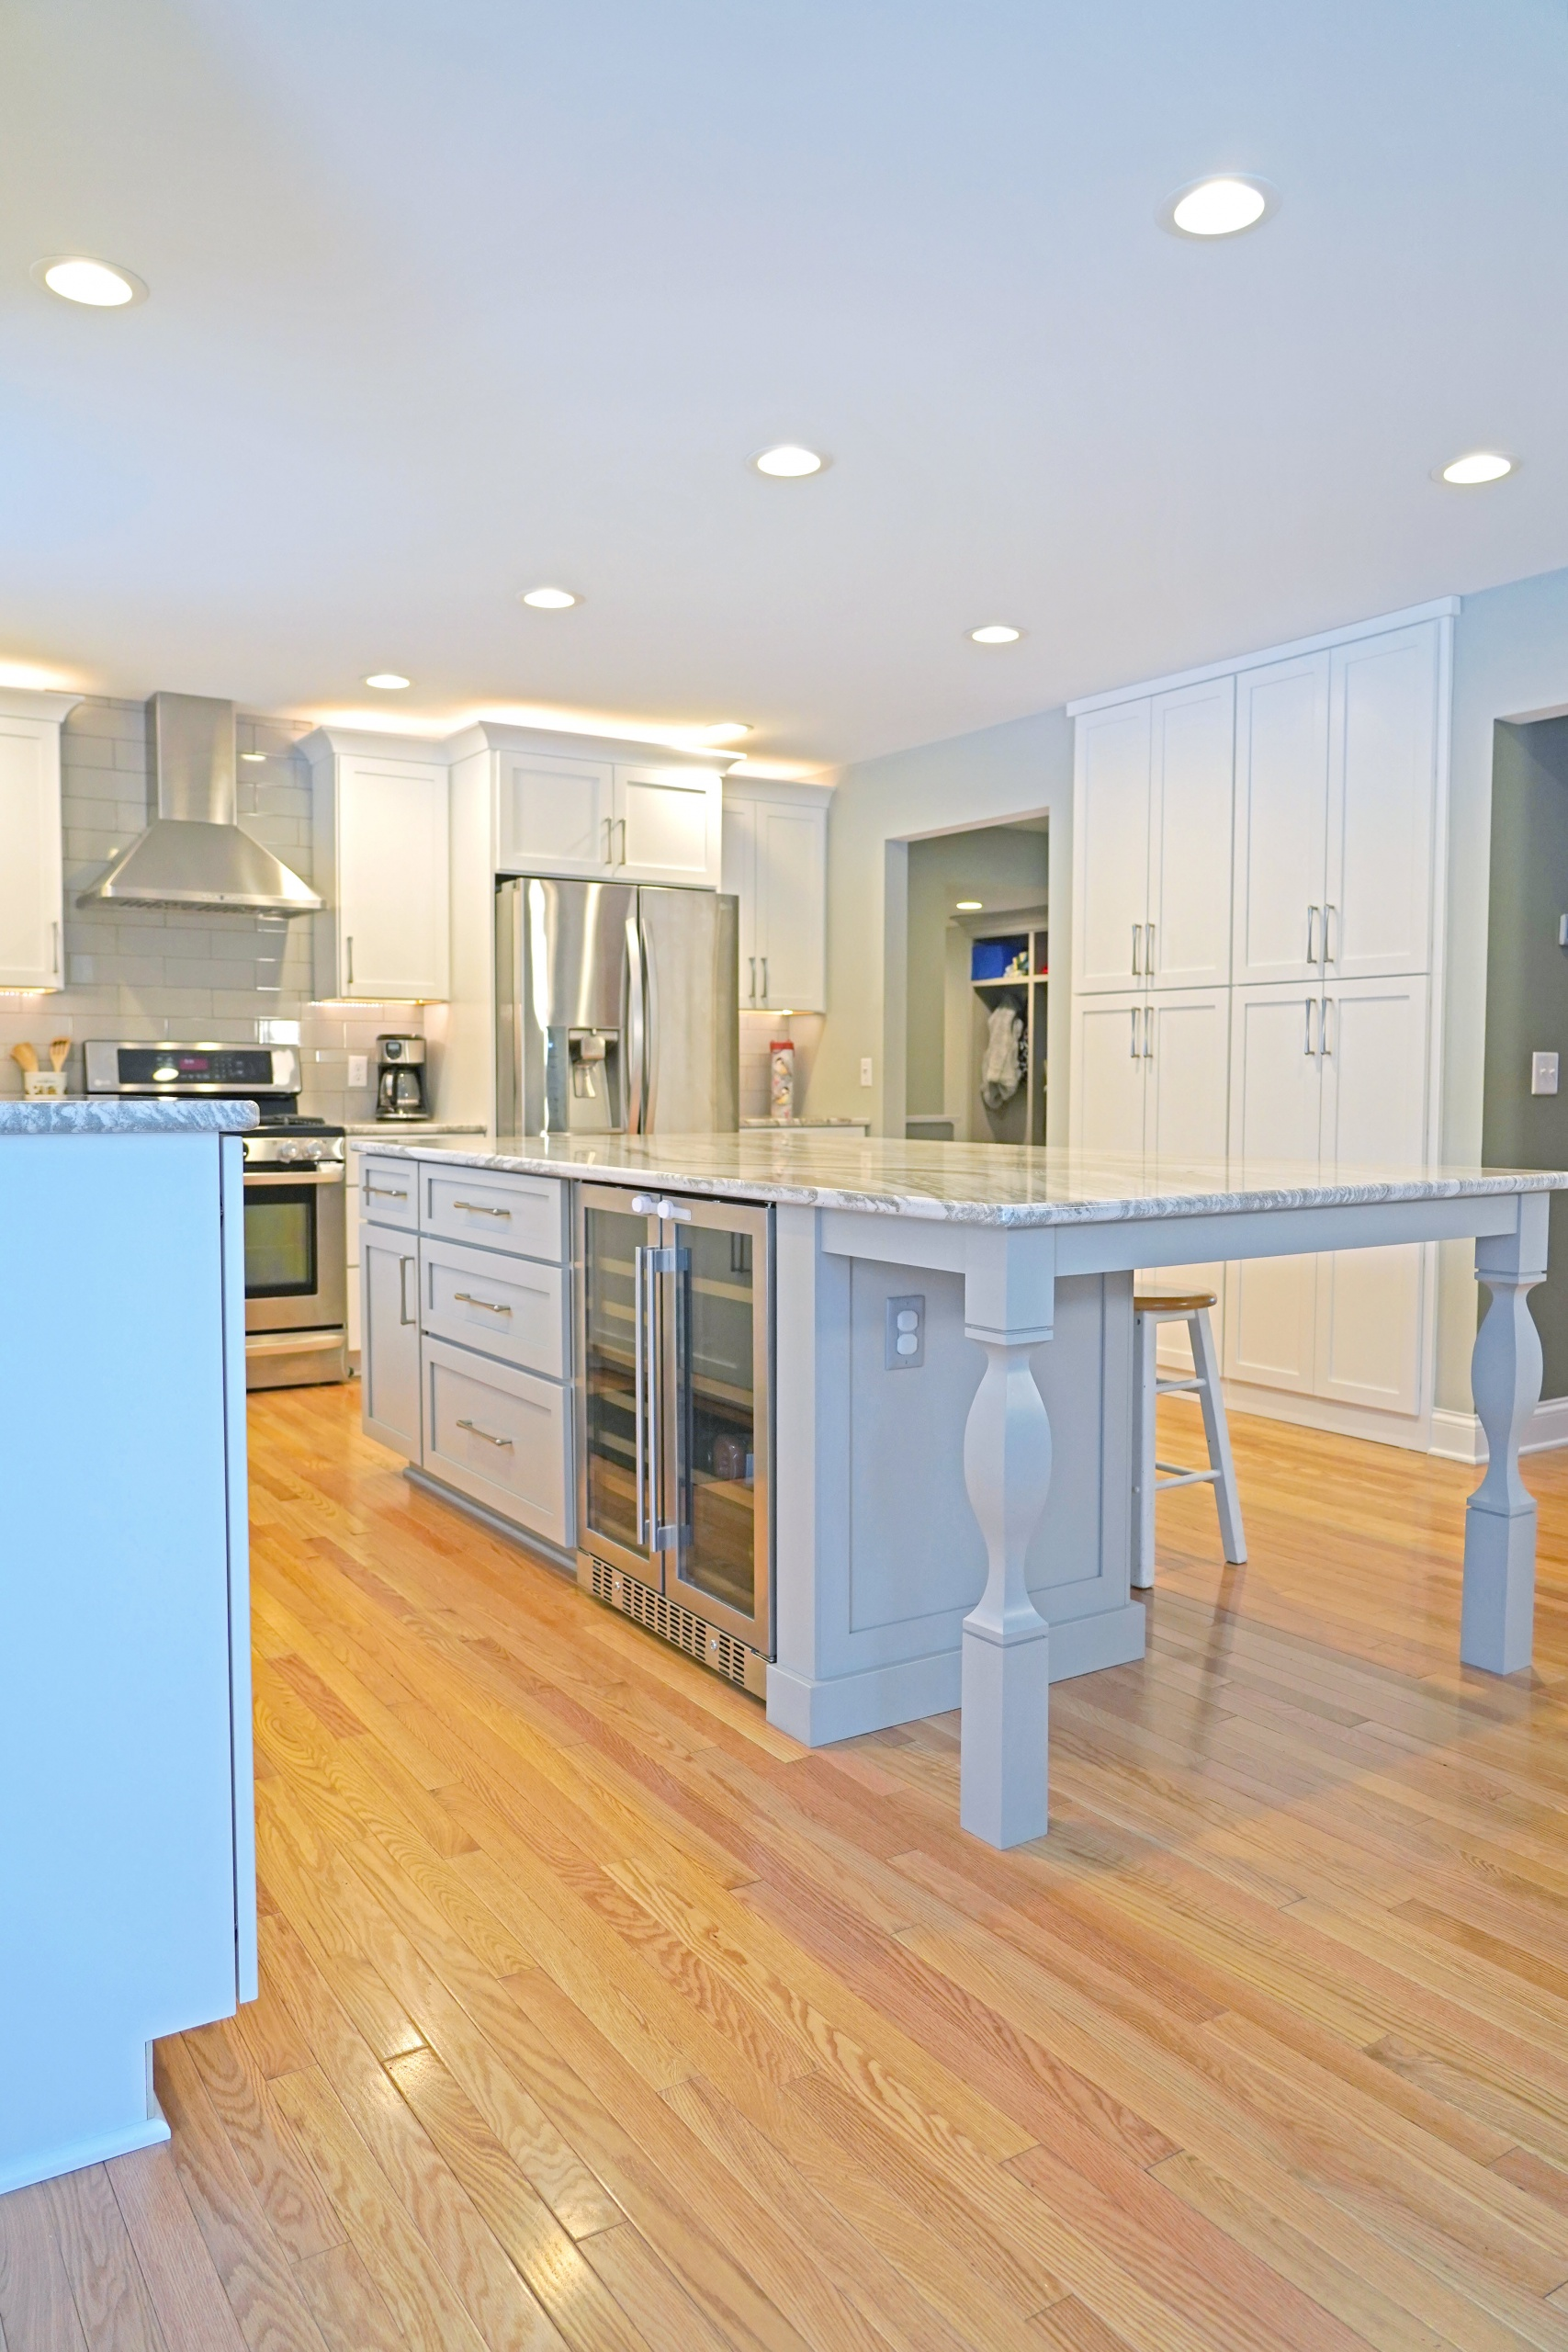 Creating Positive Remodeling Experiences for Homeowners